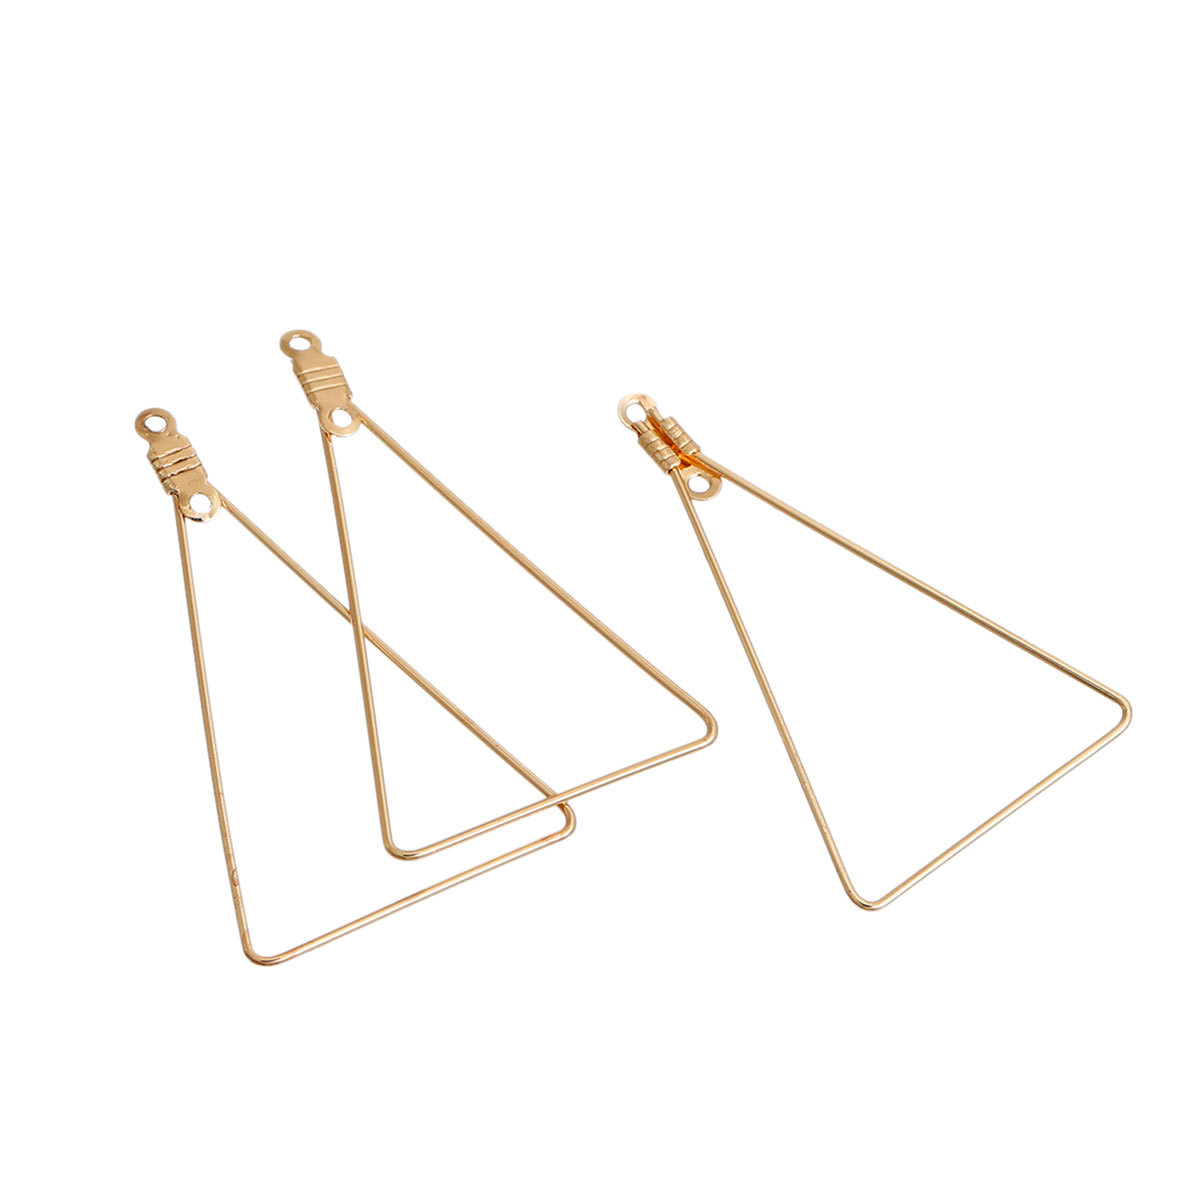 10 Triangle Earring Components, Geometric Earring Findings https://t.co/s9ldYPRITa #stampingsupplies #craft supplies #VickysJewelrySupply #Jewelrysupplies #Beads #letterbeads #handmadejewelry #Etsy #cabochons #charms #TriangleJewelry https://t.co/BgMG8X8x8Z